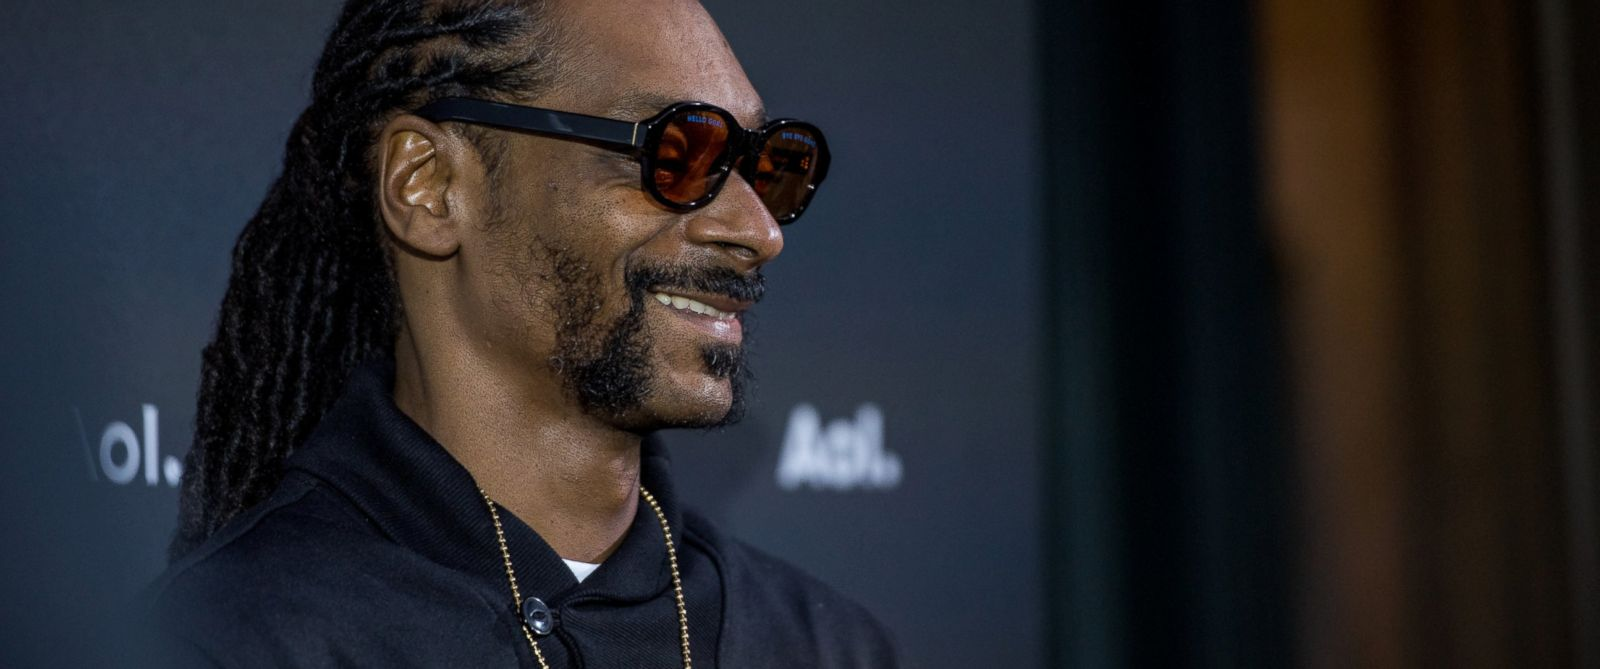 PHOTO: Snoop Dogg attends AOL Newfront, May 3, 2016 in New York.